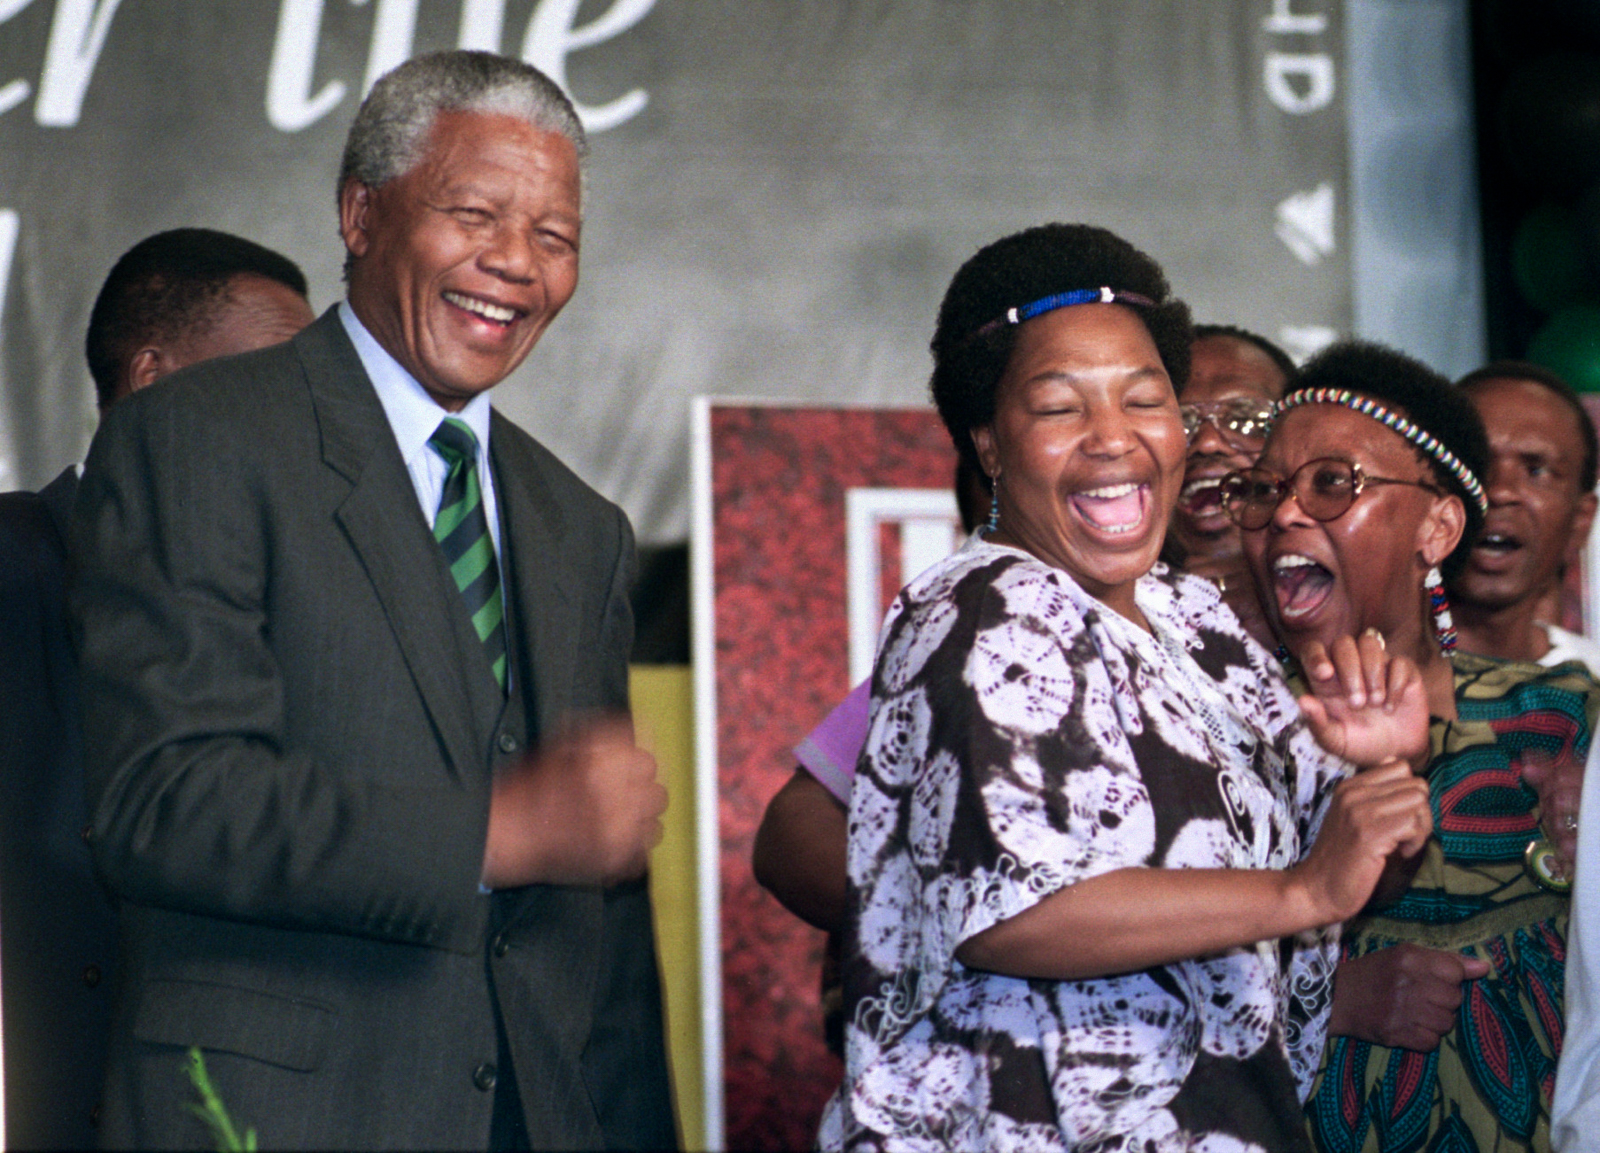 Nelson Mandela dances after making victory speech at the Carlton Hotel in Joburg.Mandatory Credit: Anacleto Rapping/The LA Times